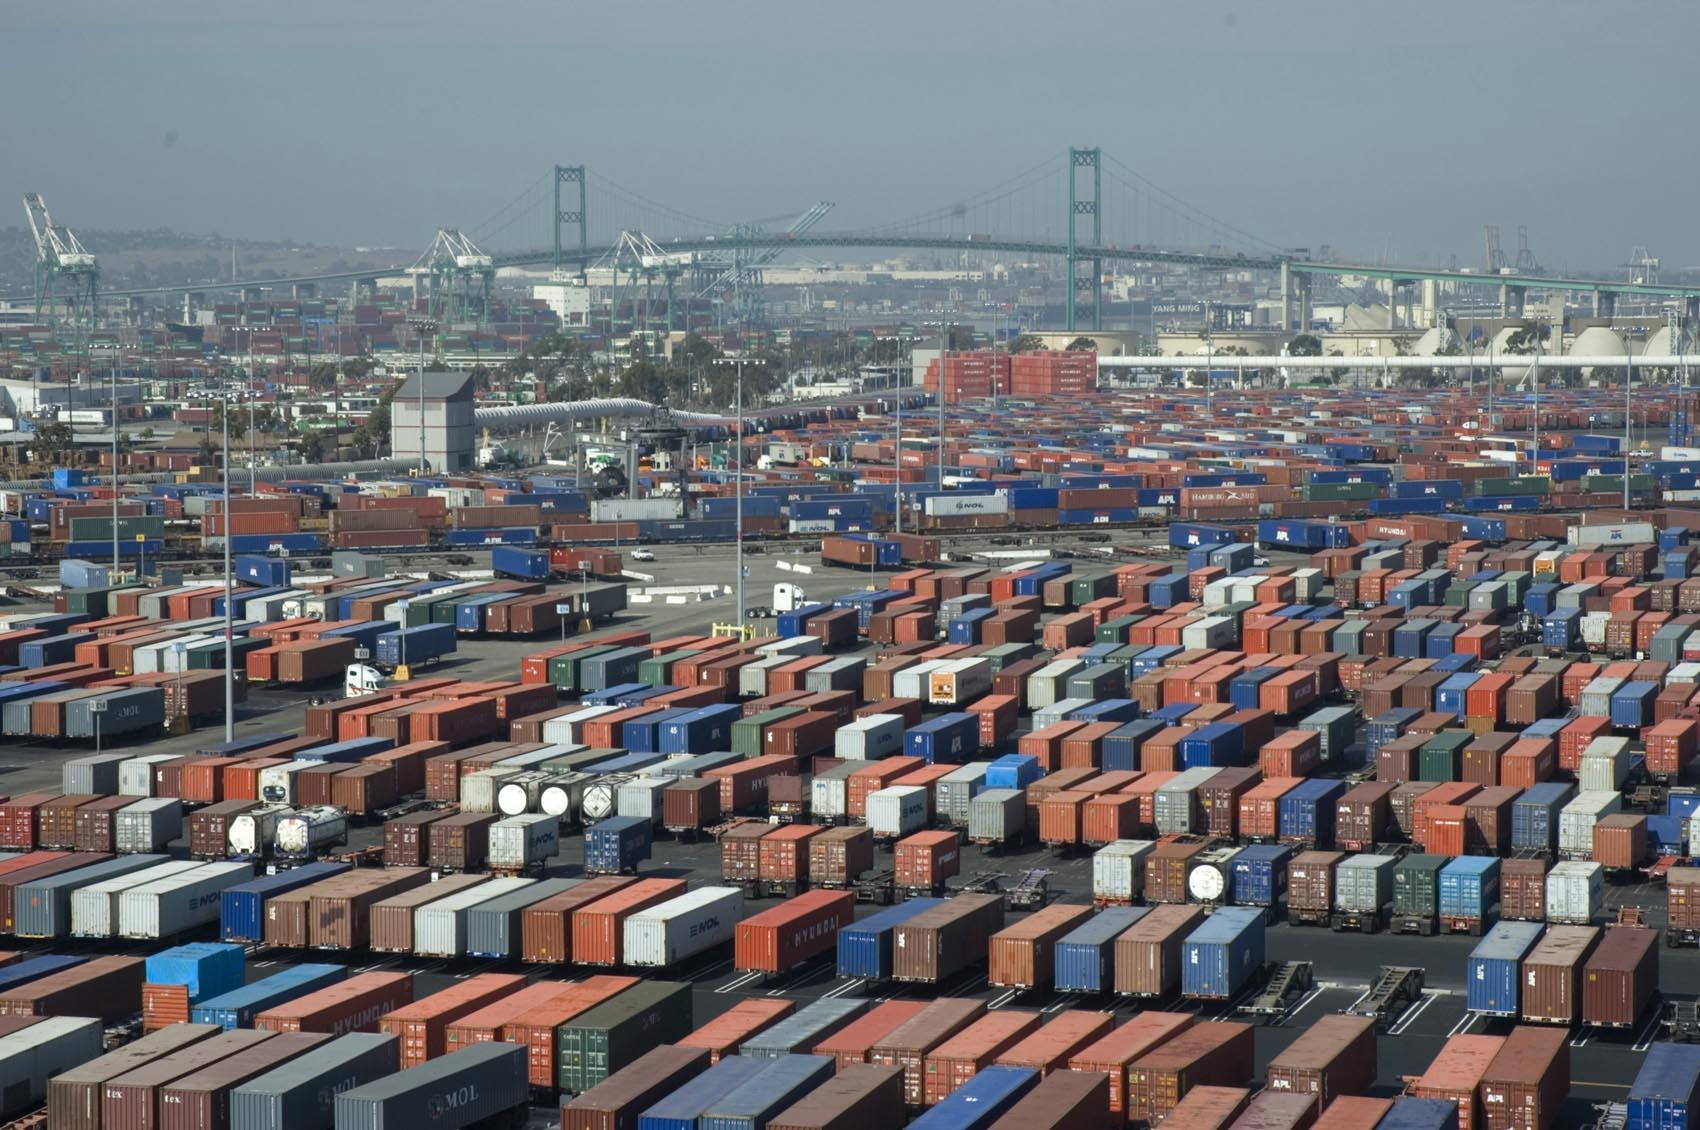 The Port of Los Angeles/Long Beach is the largest and busiest port in the U.S., handling about 45 percent of all containers incoming into Customs and Border Protection.